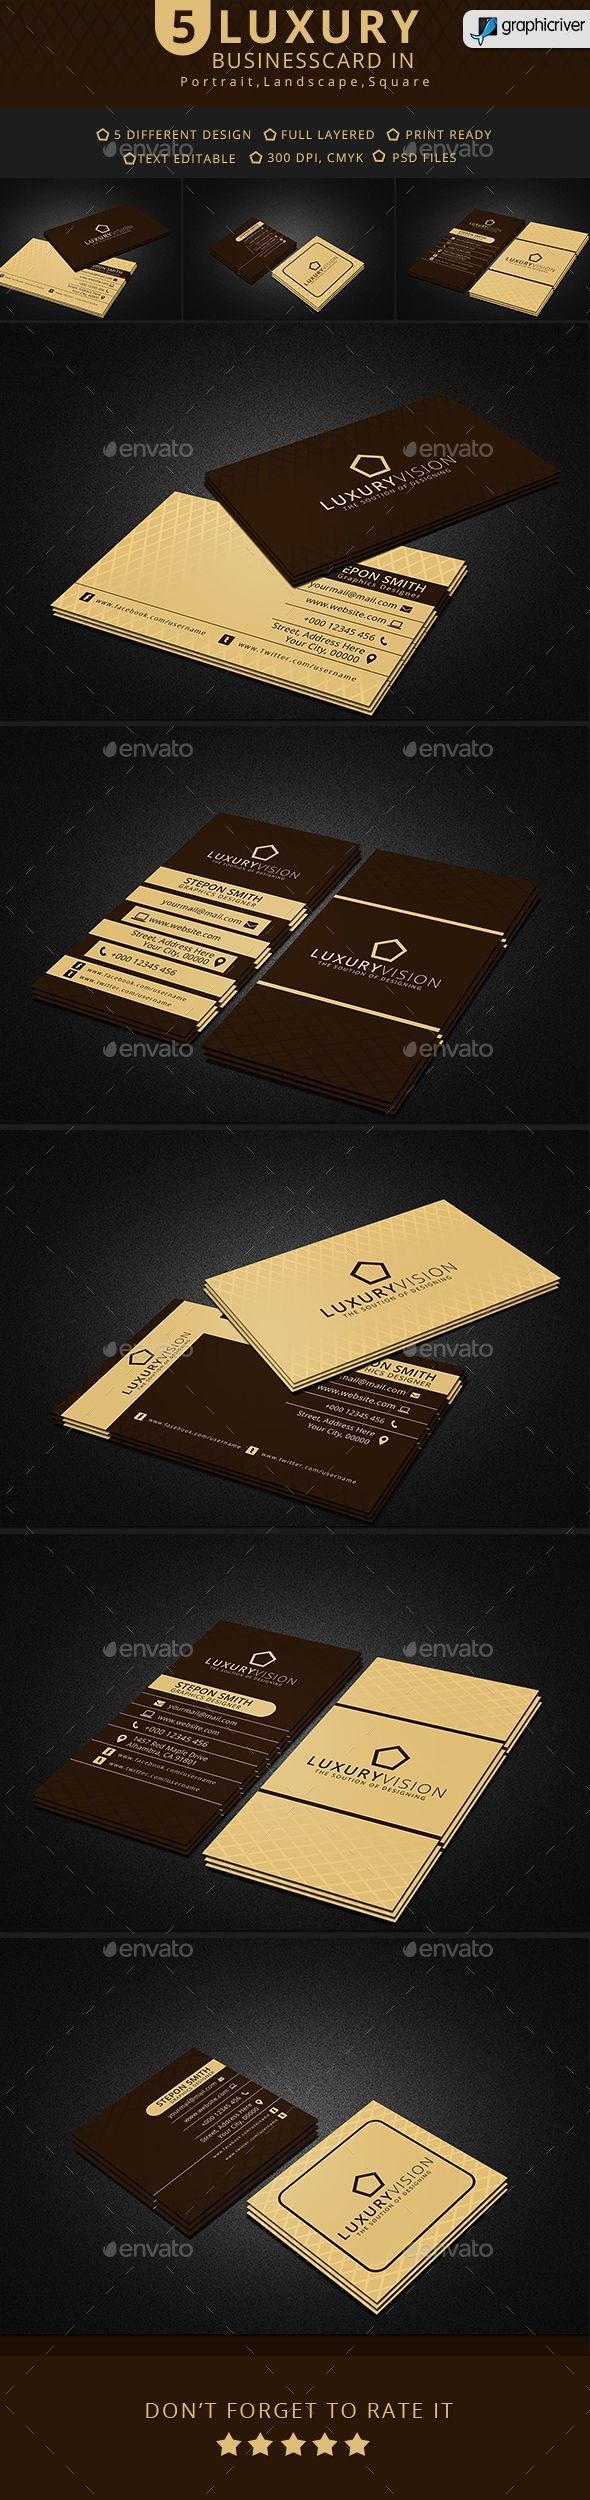 The 9469 best Business Cards Maker images on Pinterest | Business ...